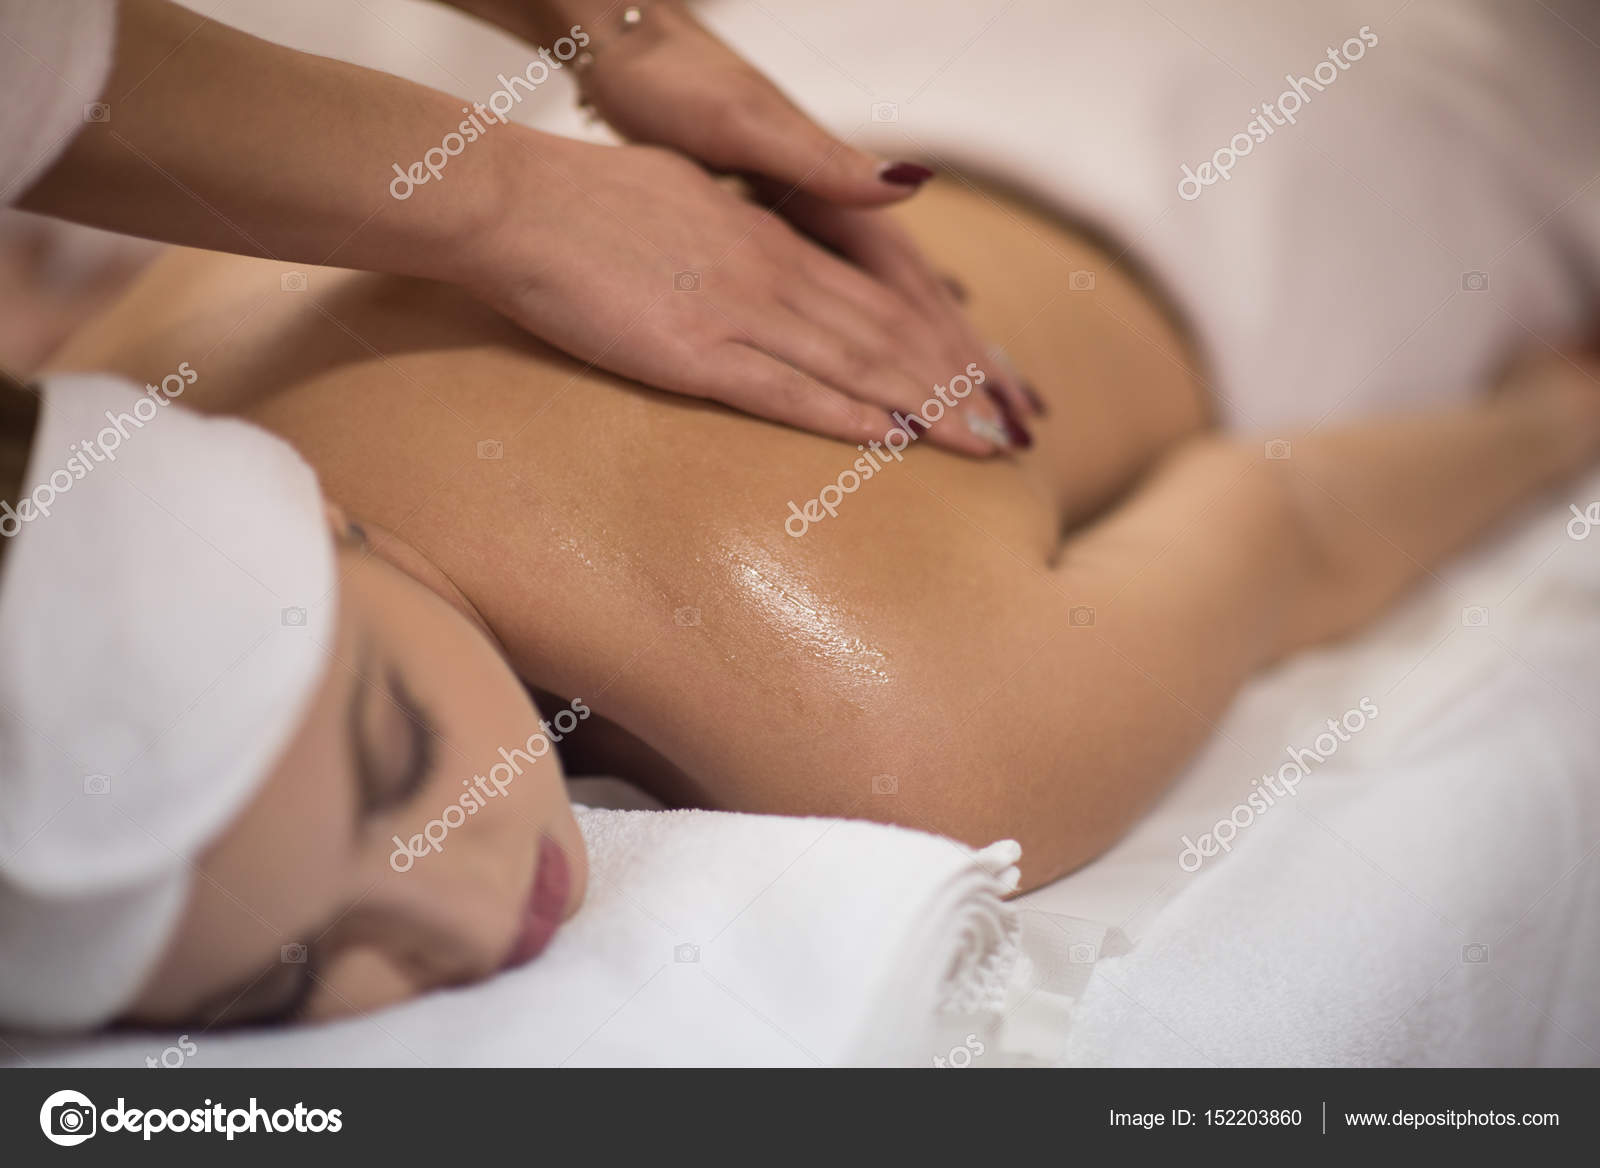 Remarkable, girl laying on stomach getting a massage